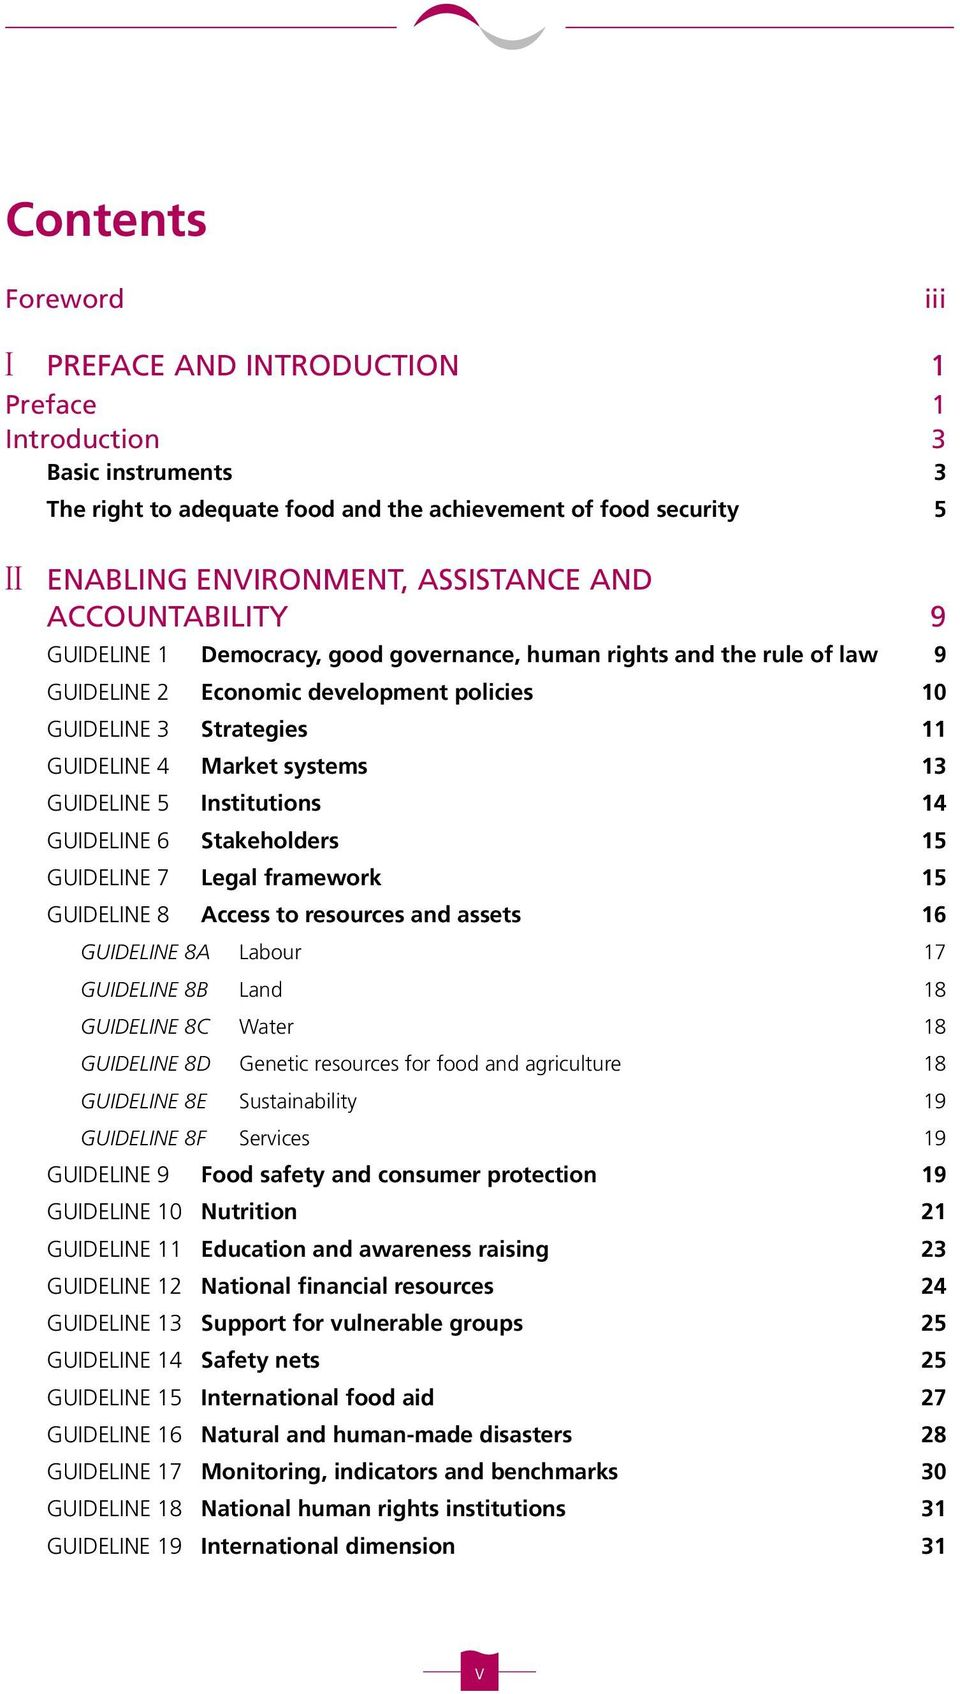 GUIDELINE 5 Institutions 14 GUIDELINE 6 Stakeholders 15 GUIDELINE 7 Legal framework 15 GUIDELINE 8 Access to resources and assets 16 GUIDELINE 8A Labour 17 GUIDELINE 8B Land 18 GUIDELINE 8C Water 18